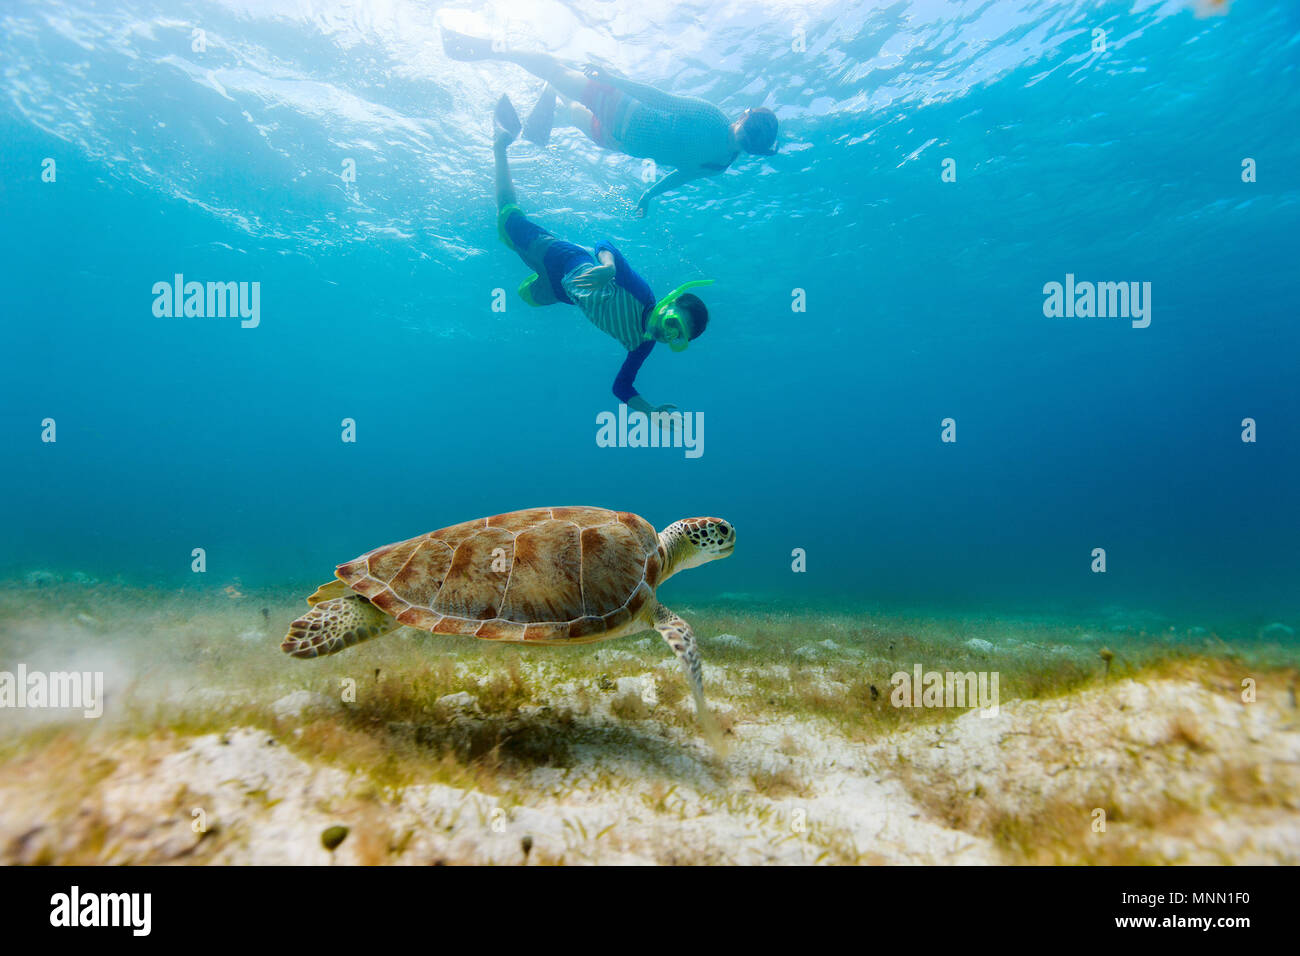 Underwater photo of family mother and son snorkeling and swimming with Hawksbill sea turtle - Stock Image